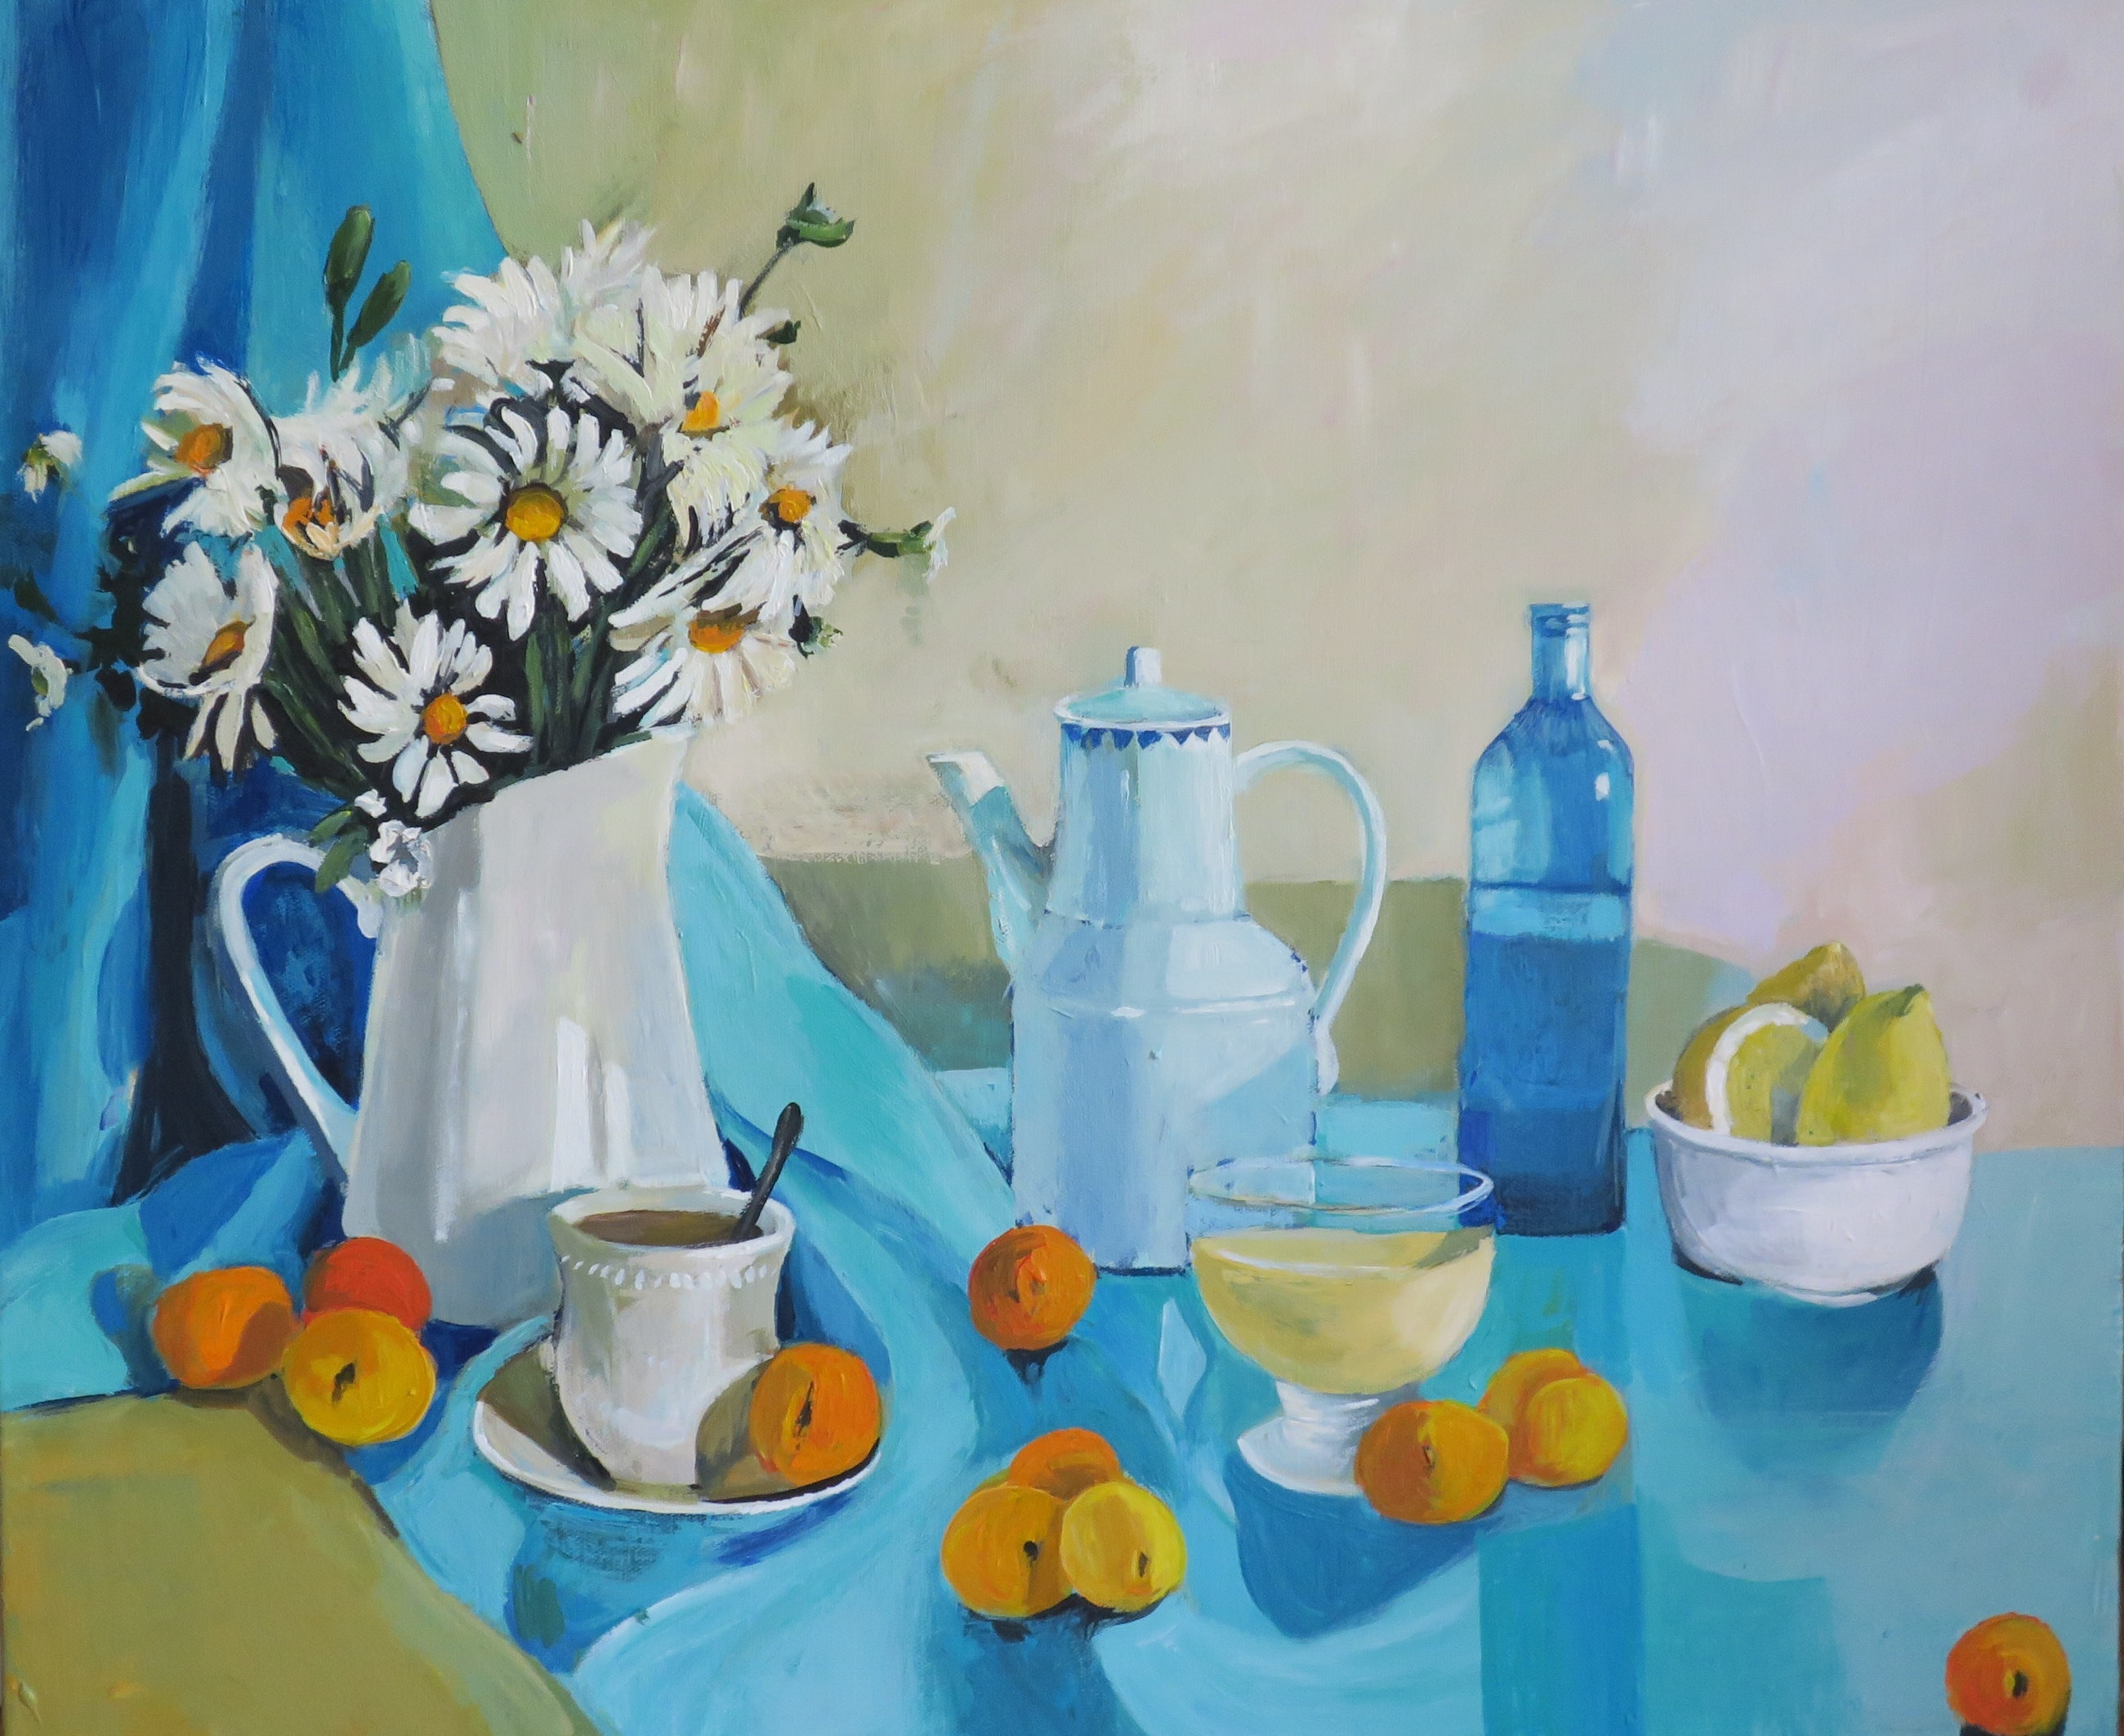 Floral Still Life - Daisies and Peaches by Susan Trudinger. Acrylic painting